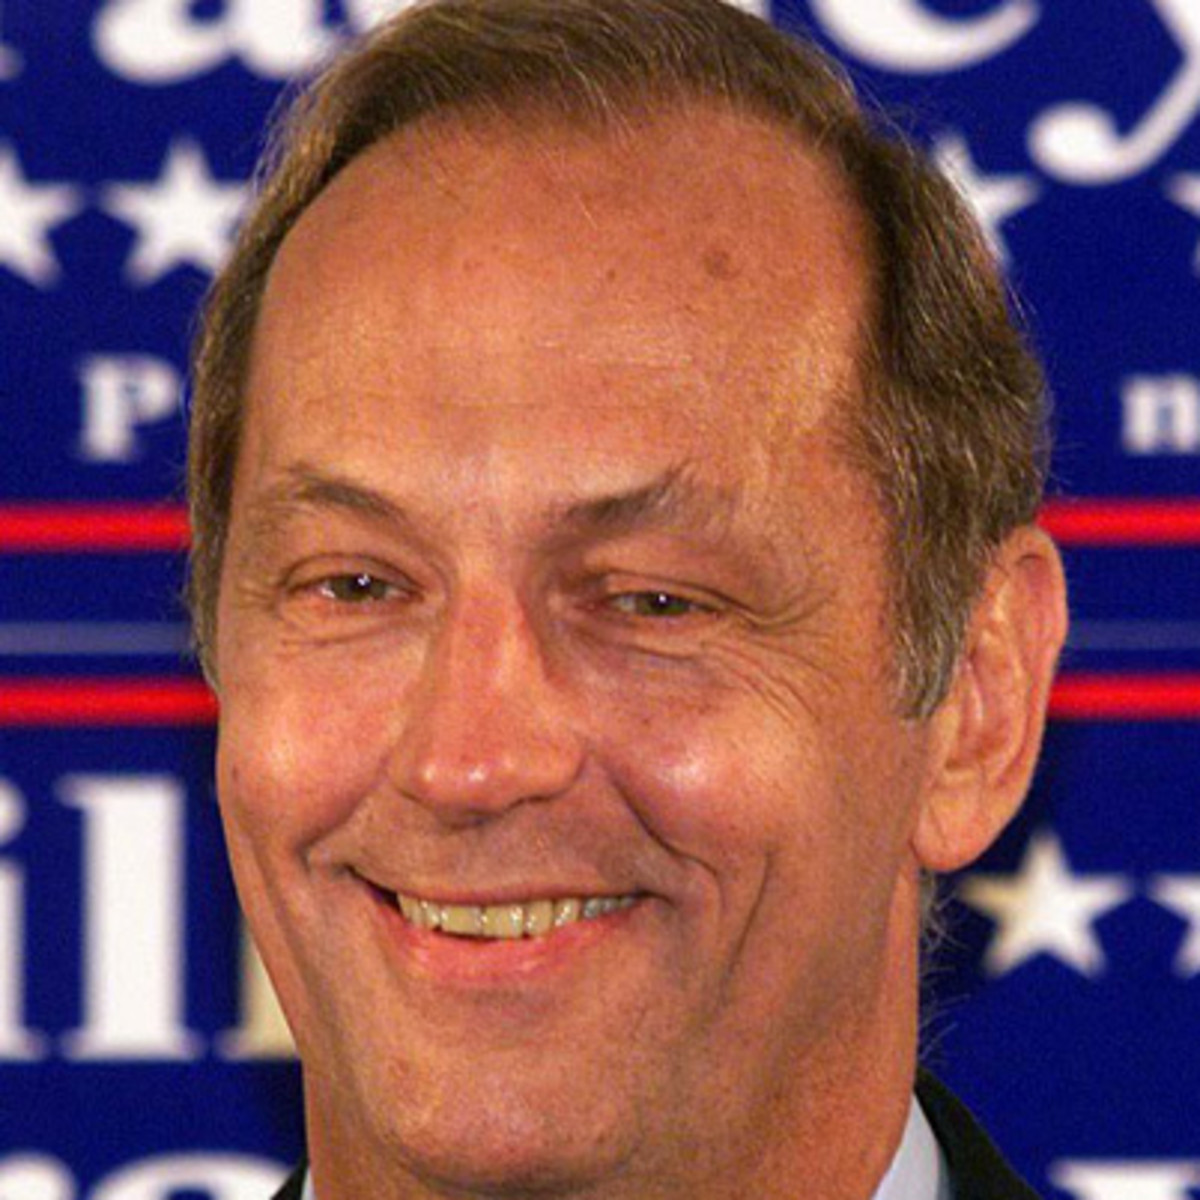 Bill Bradley Famous Basketball Players U S Senator U S